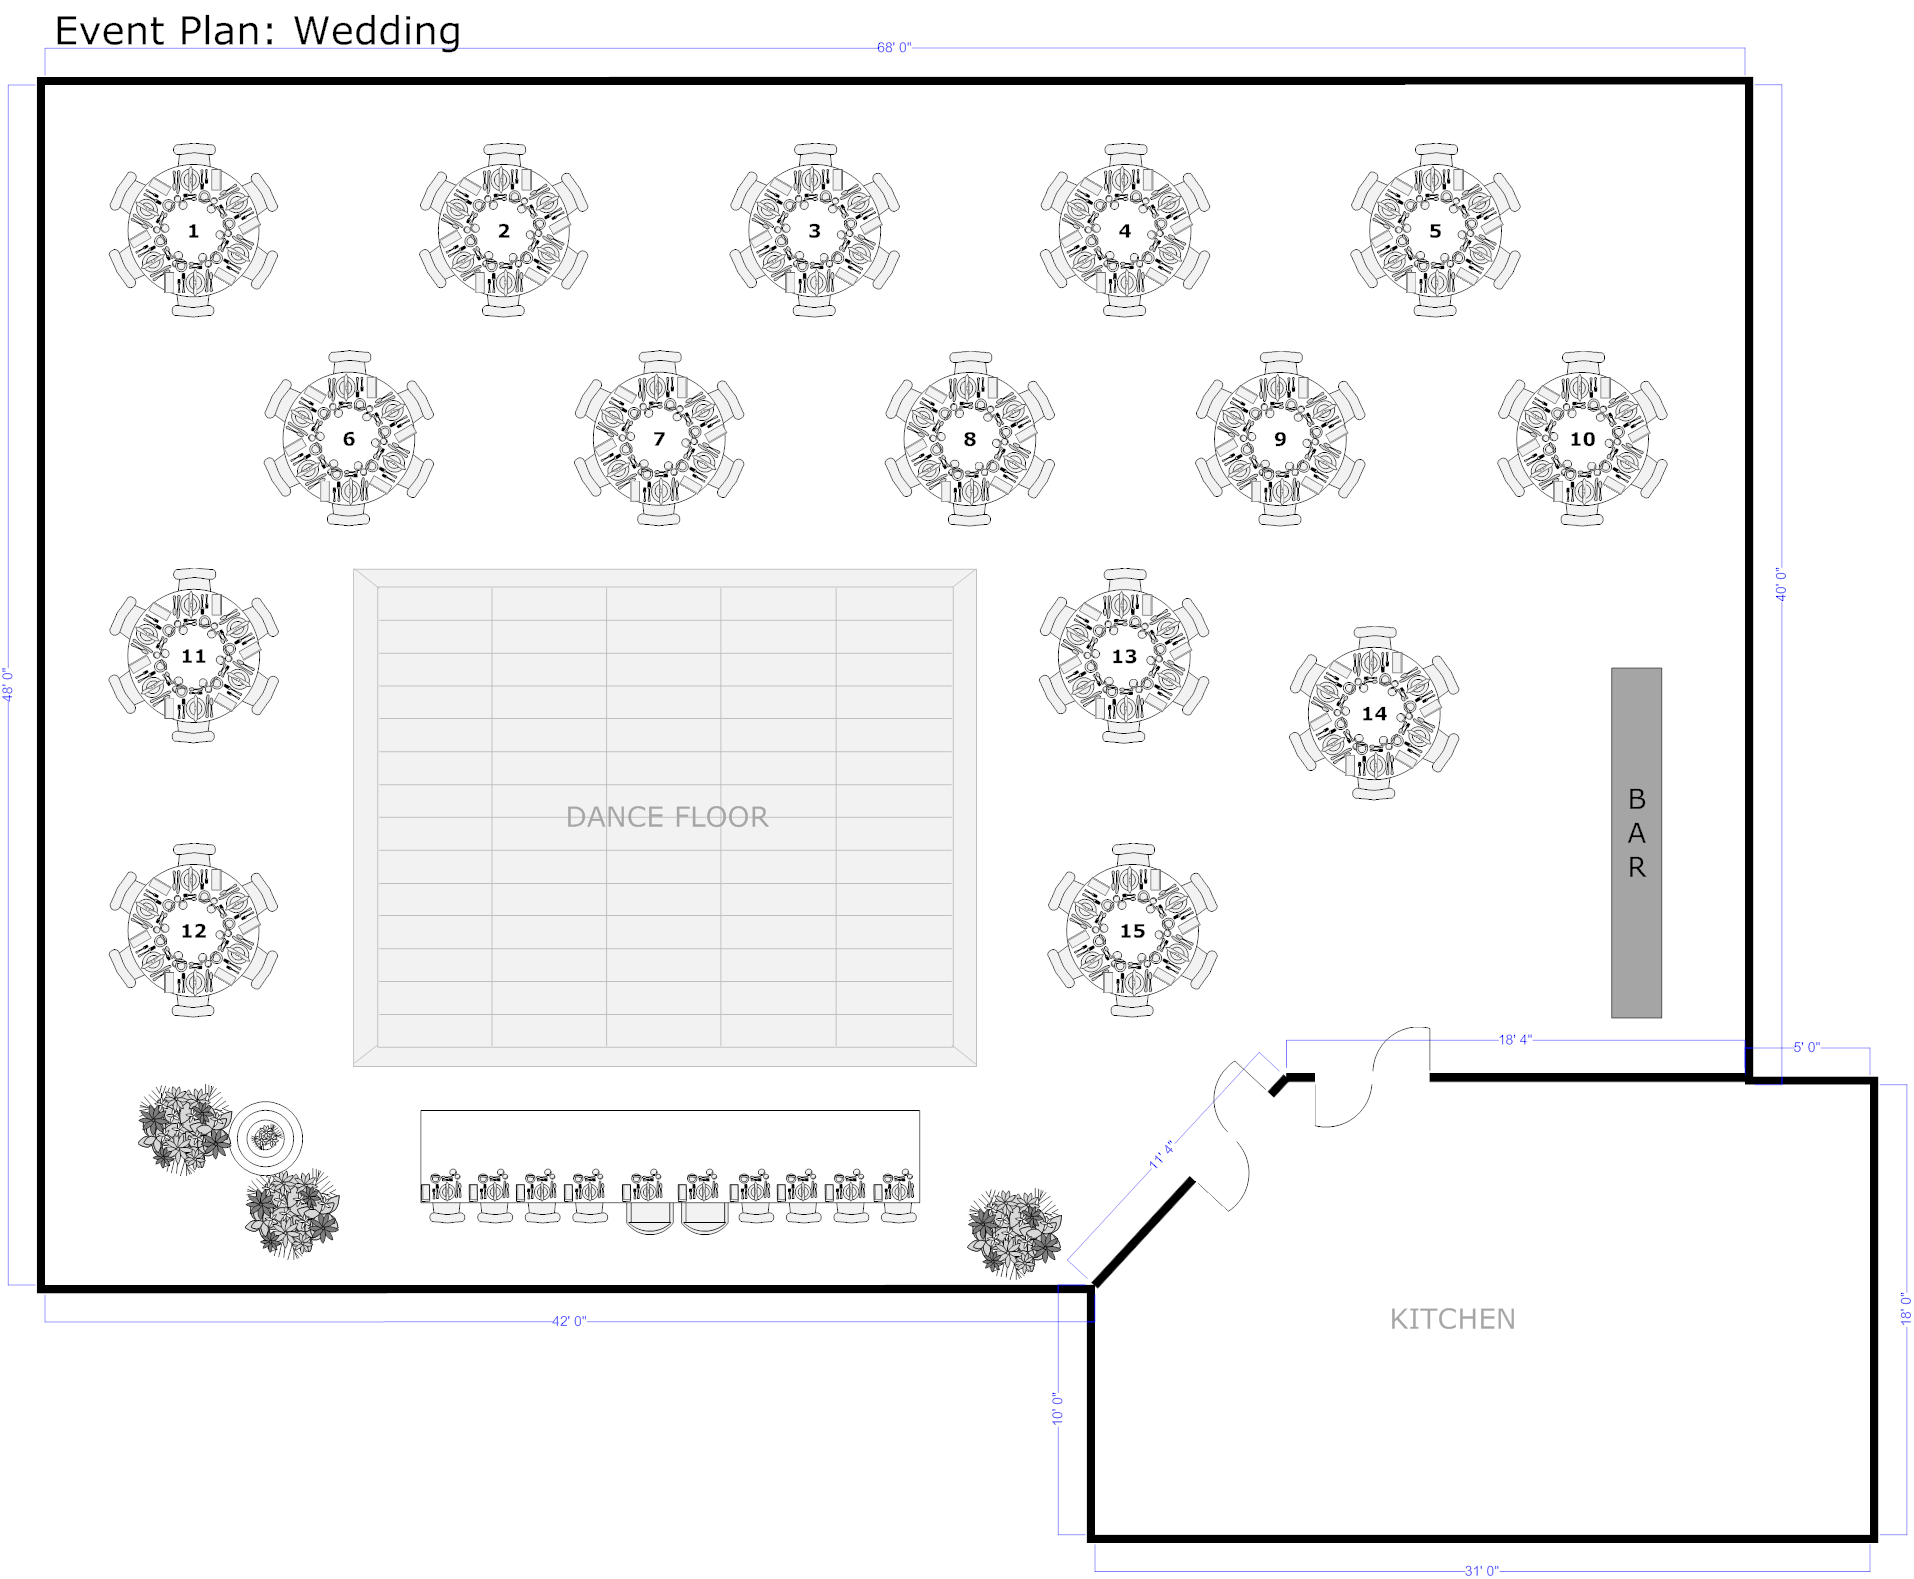 Pin by tiny king on event planning setup pinterest reception wedding floor plan template best free home design idea inspiration pronofoot35fo Image collections